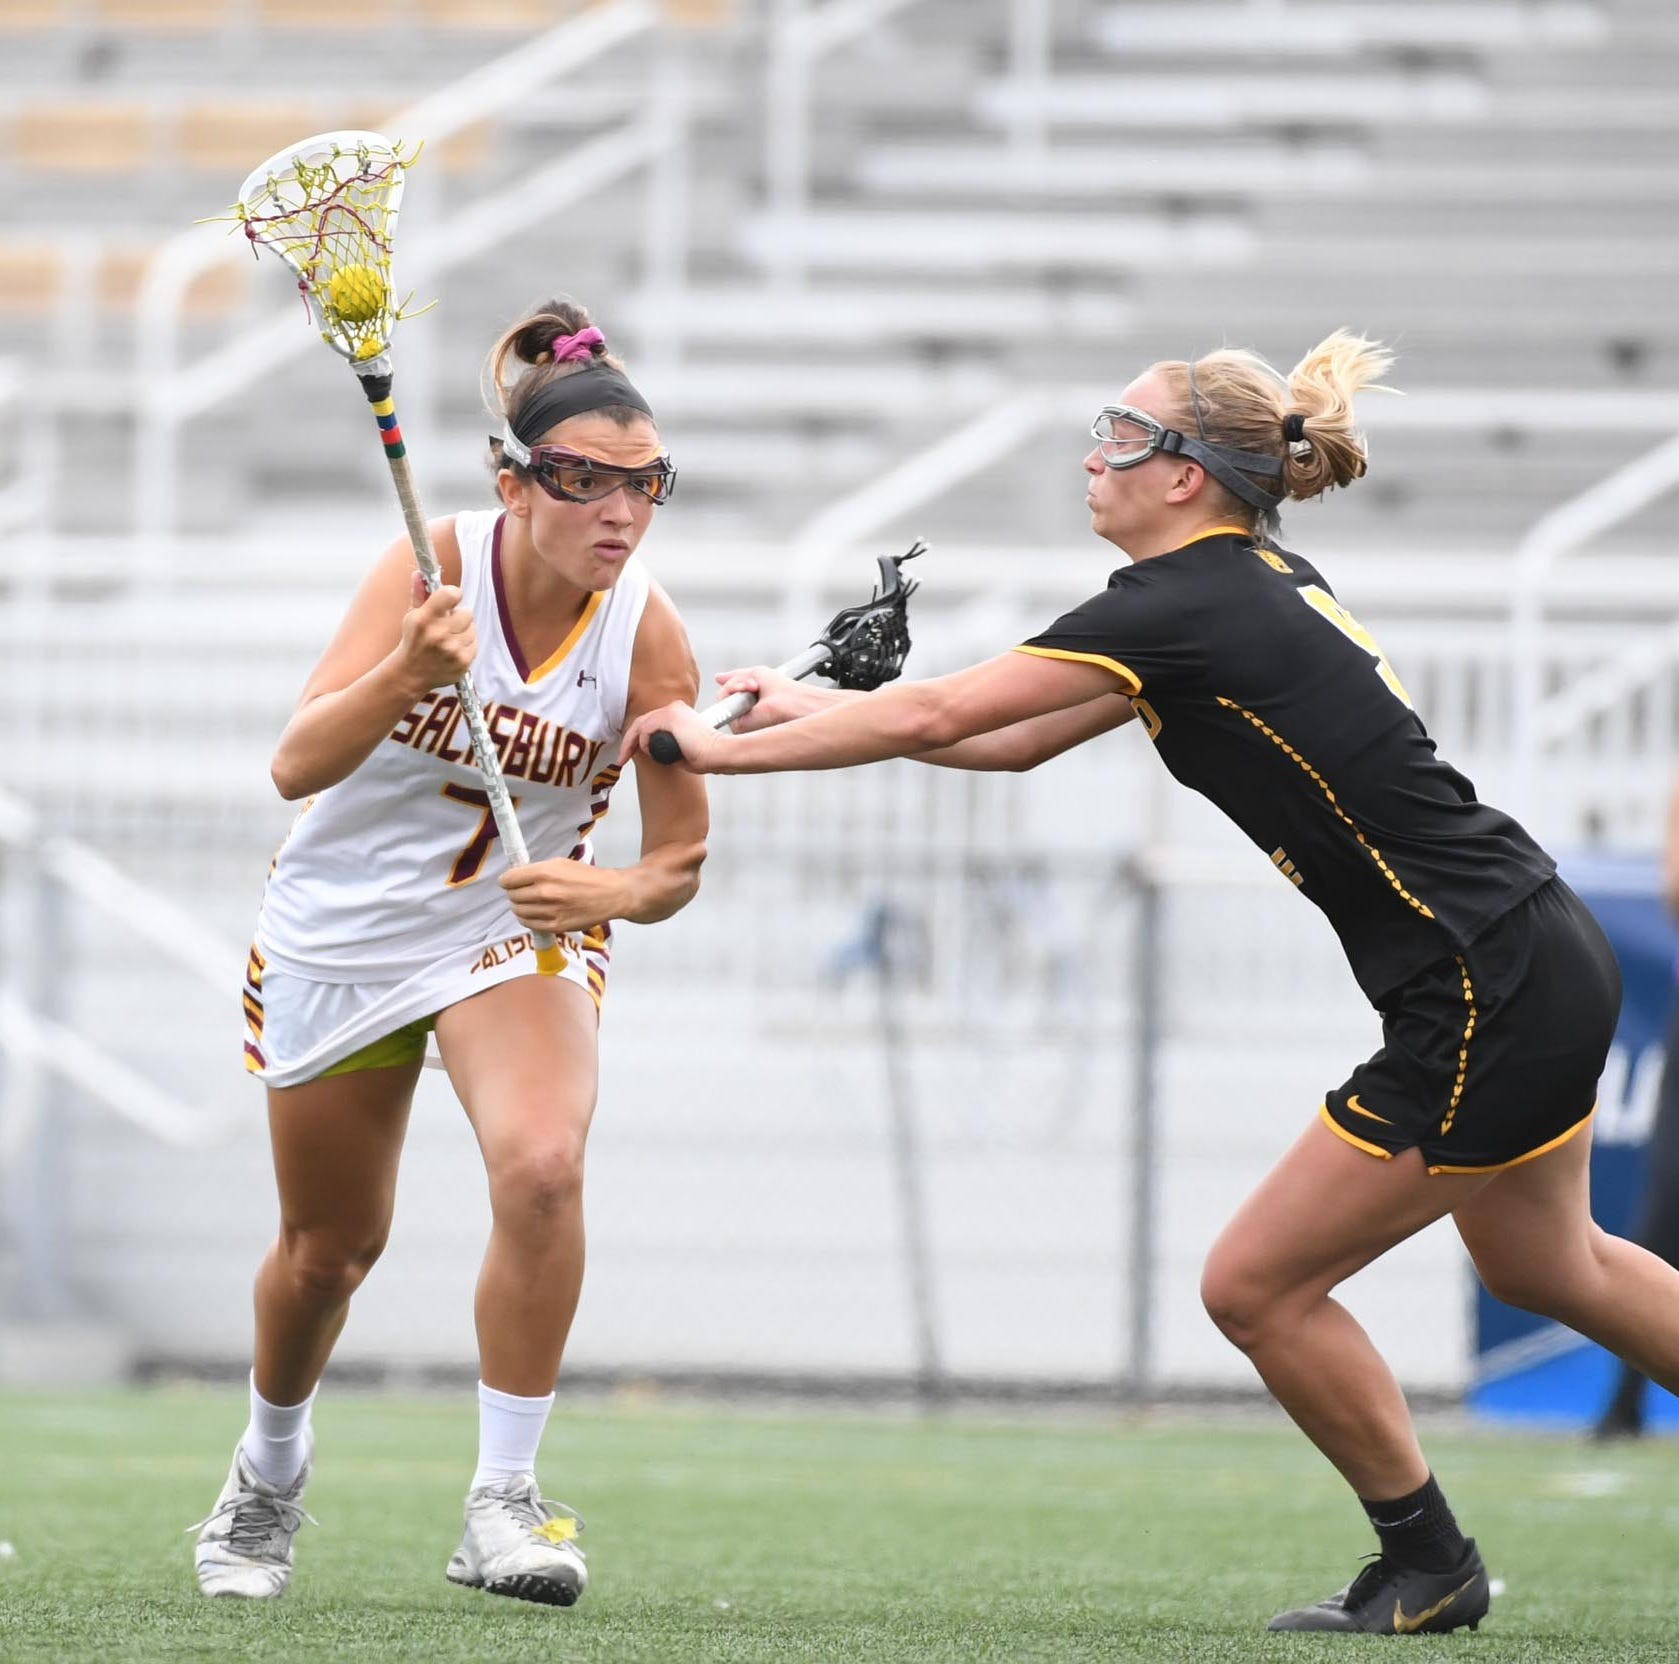 Easton grad advances Salisbury women's lacrosse to NCAA semifinals